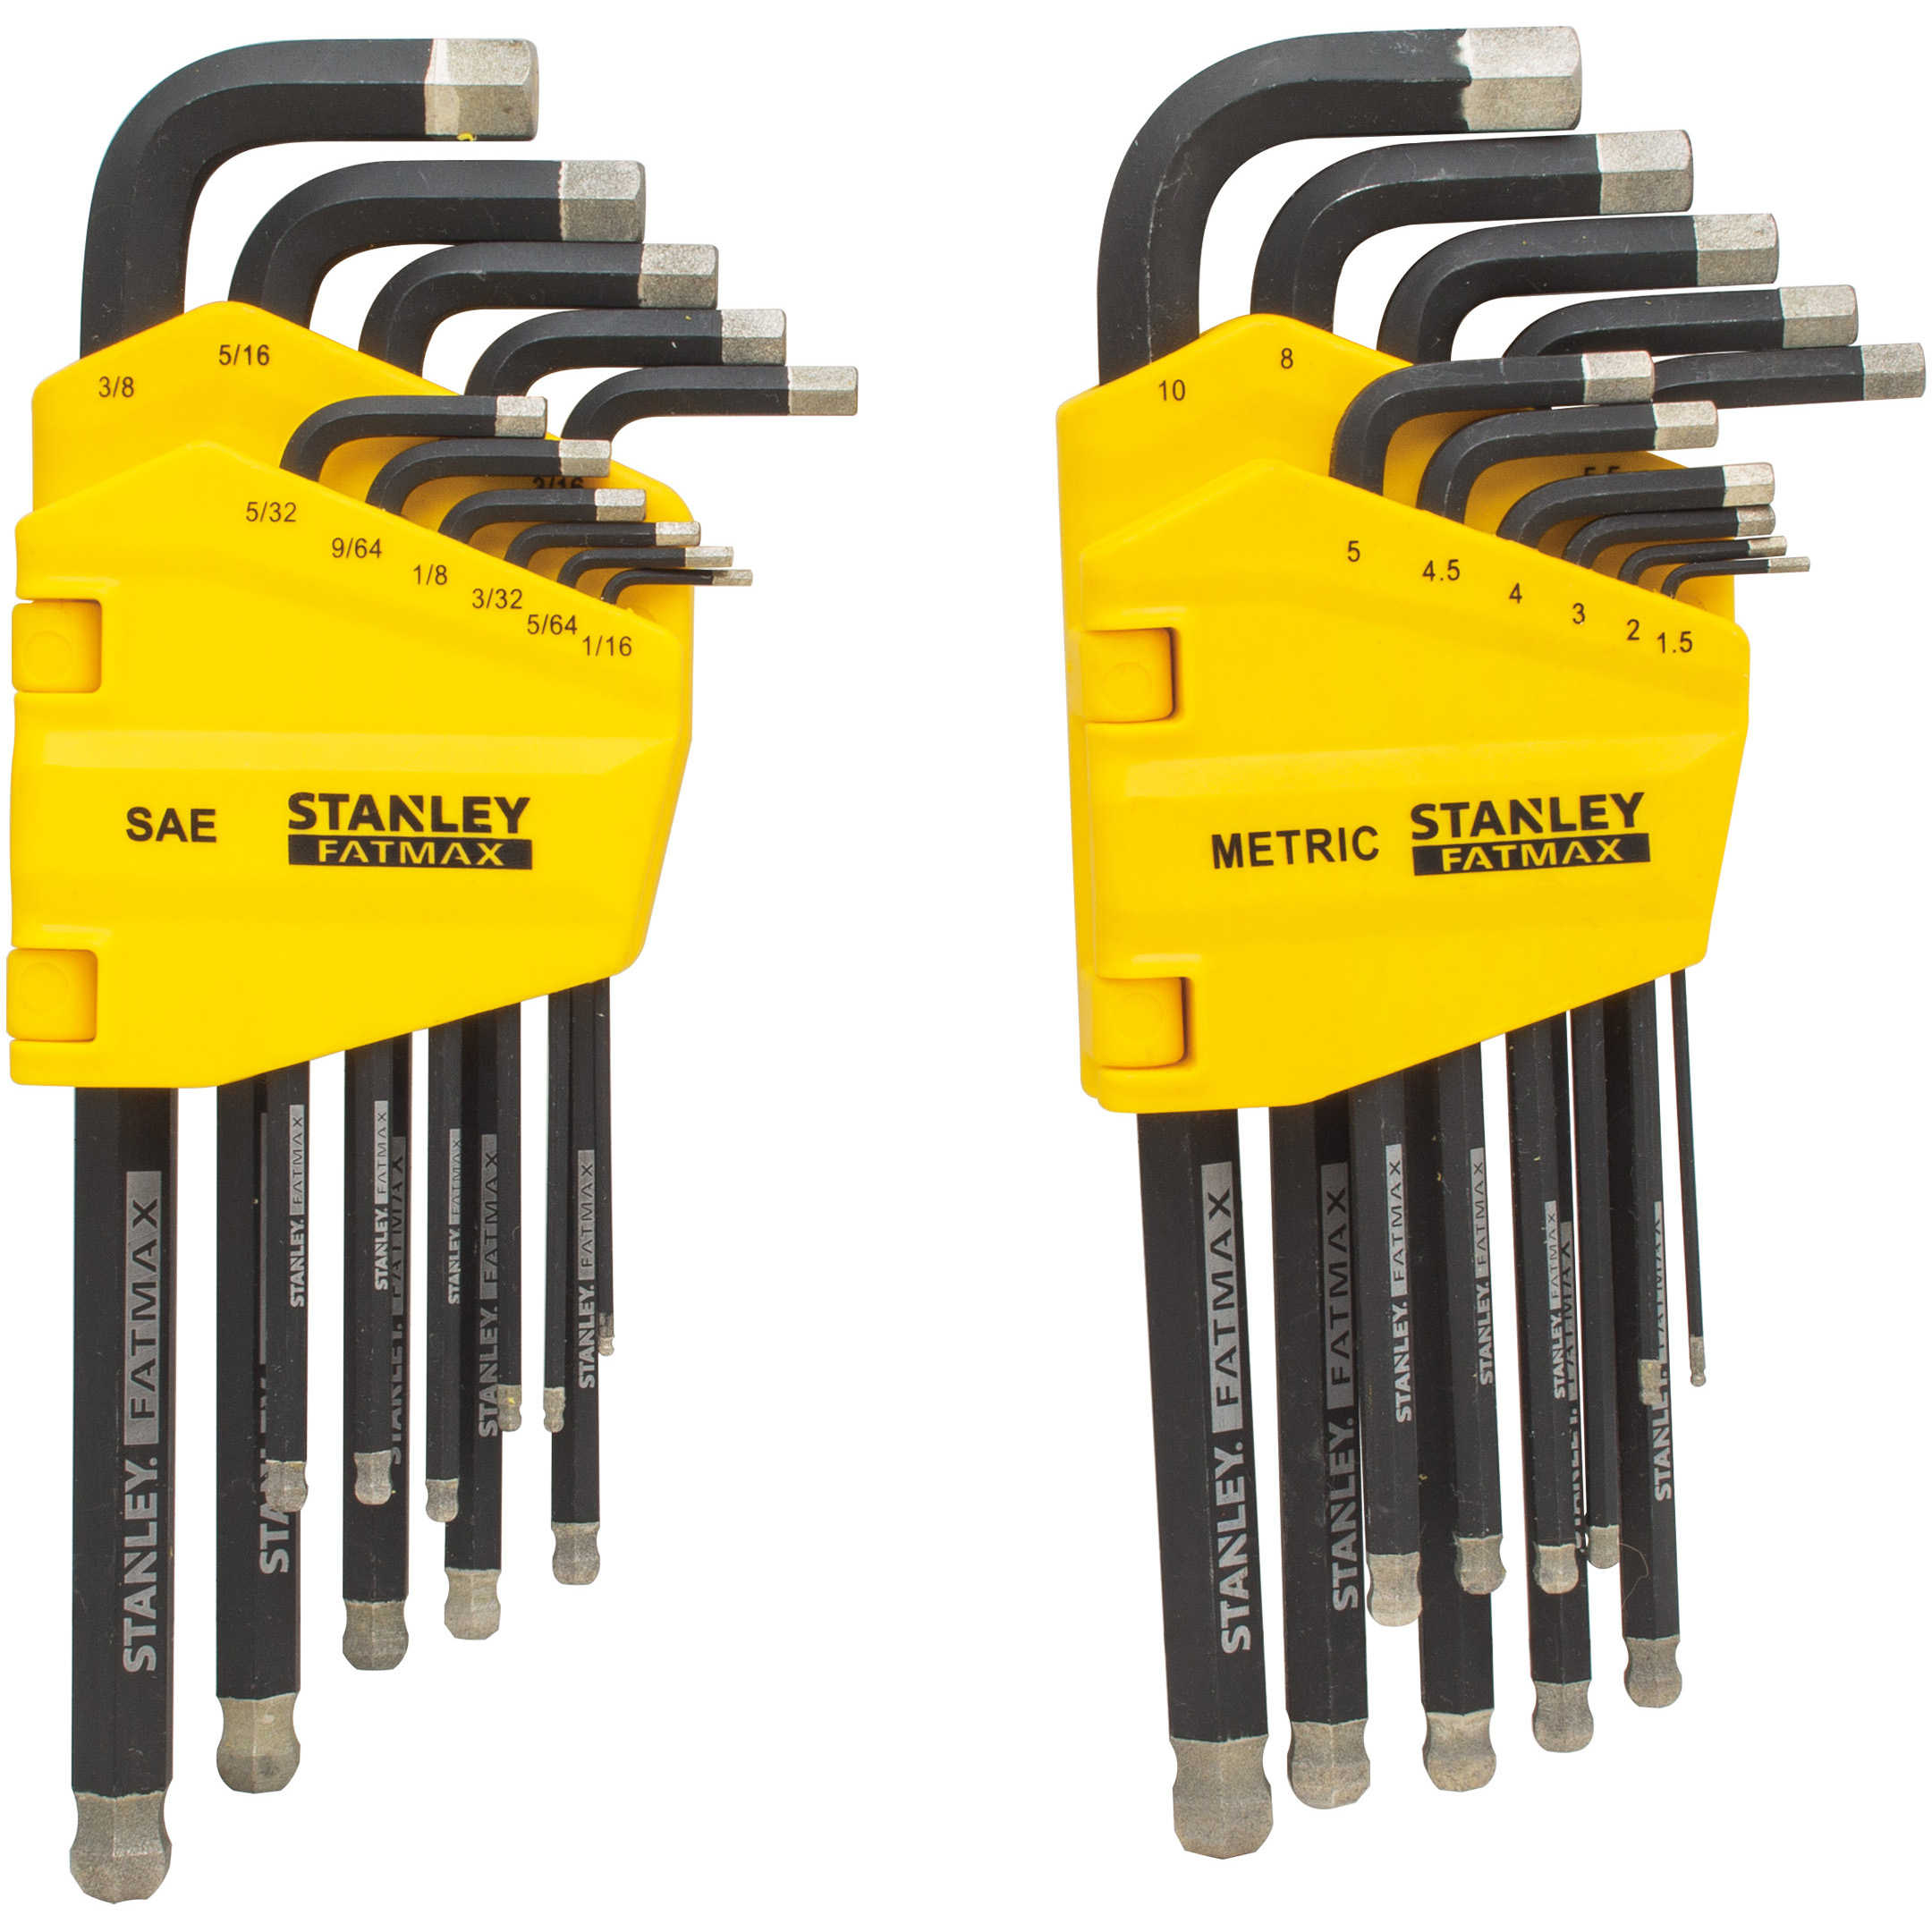 STANLEY FatMax FMHT80763 22pc Diamond HEX Key Set